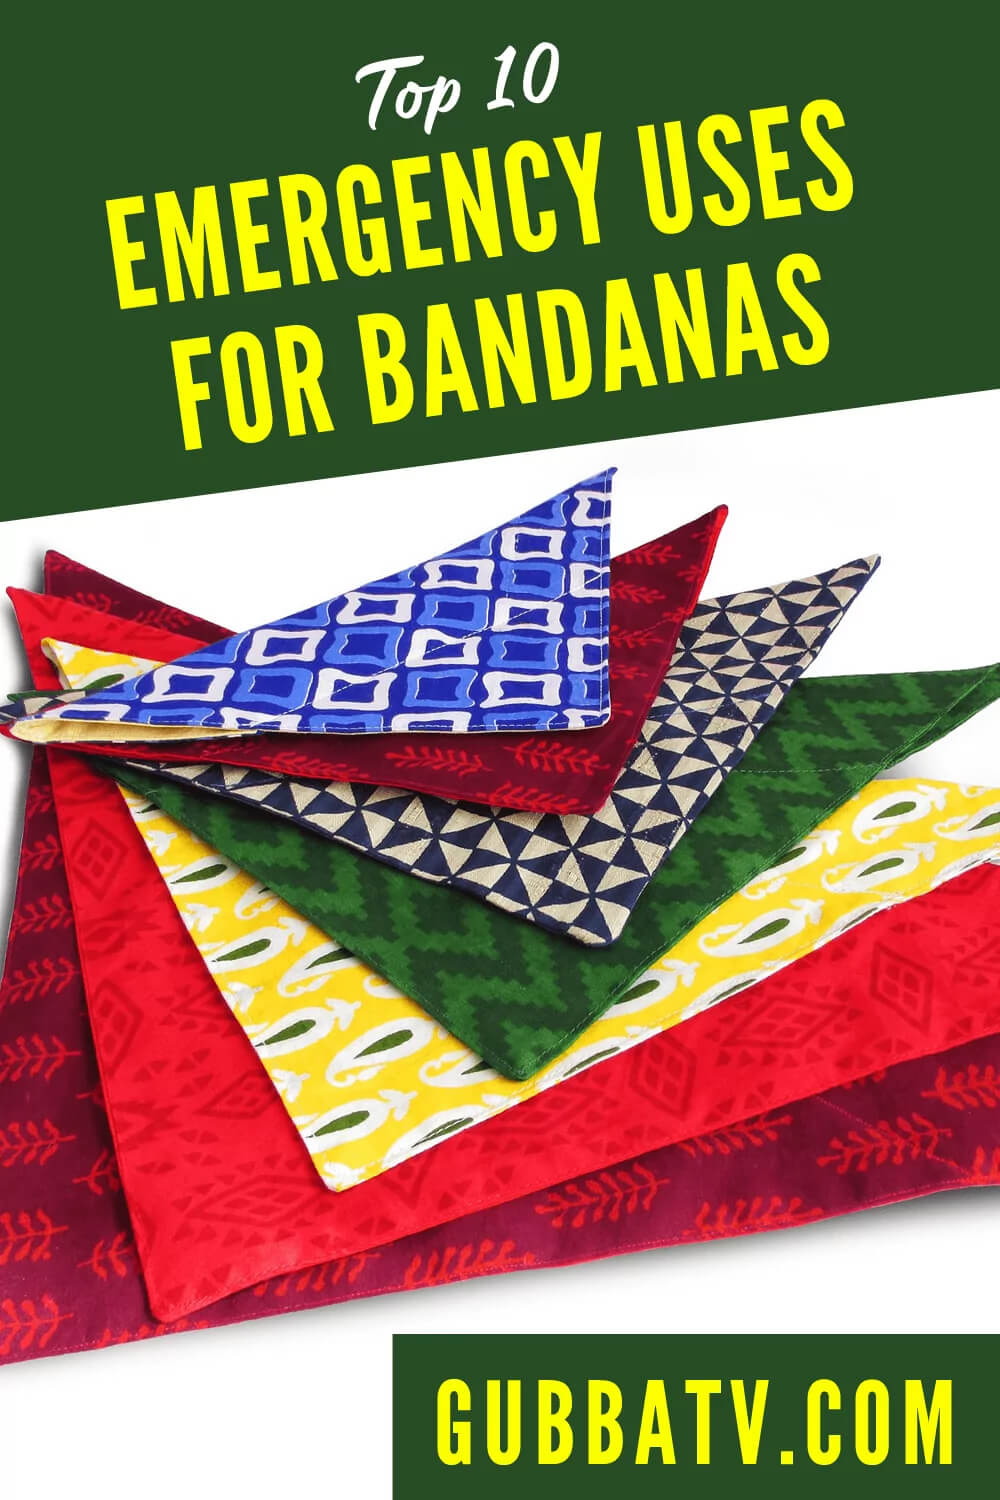 Top 10 Survival Uses For Bandanas